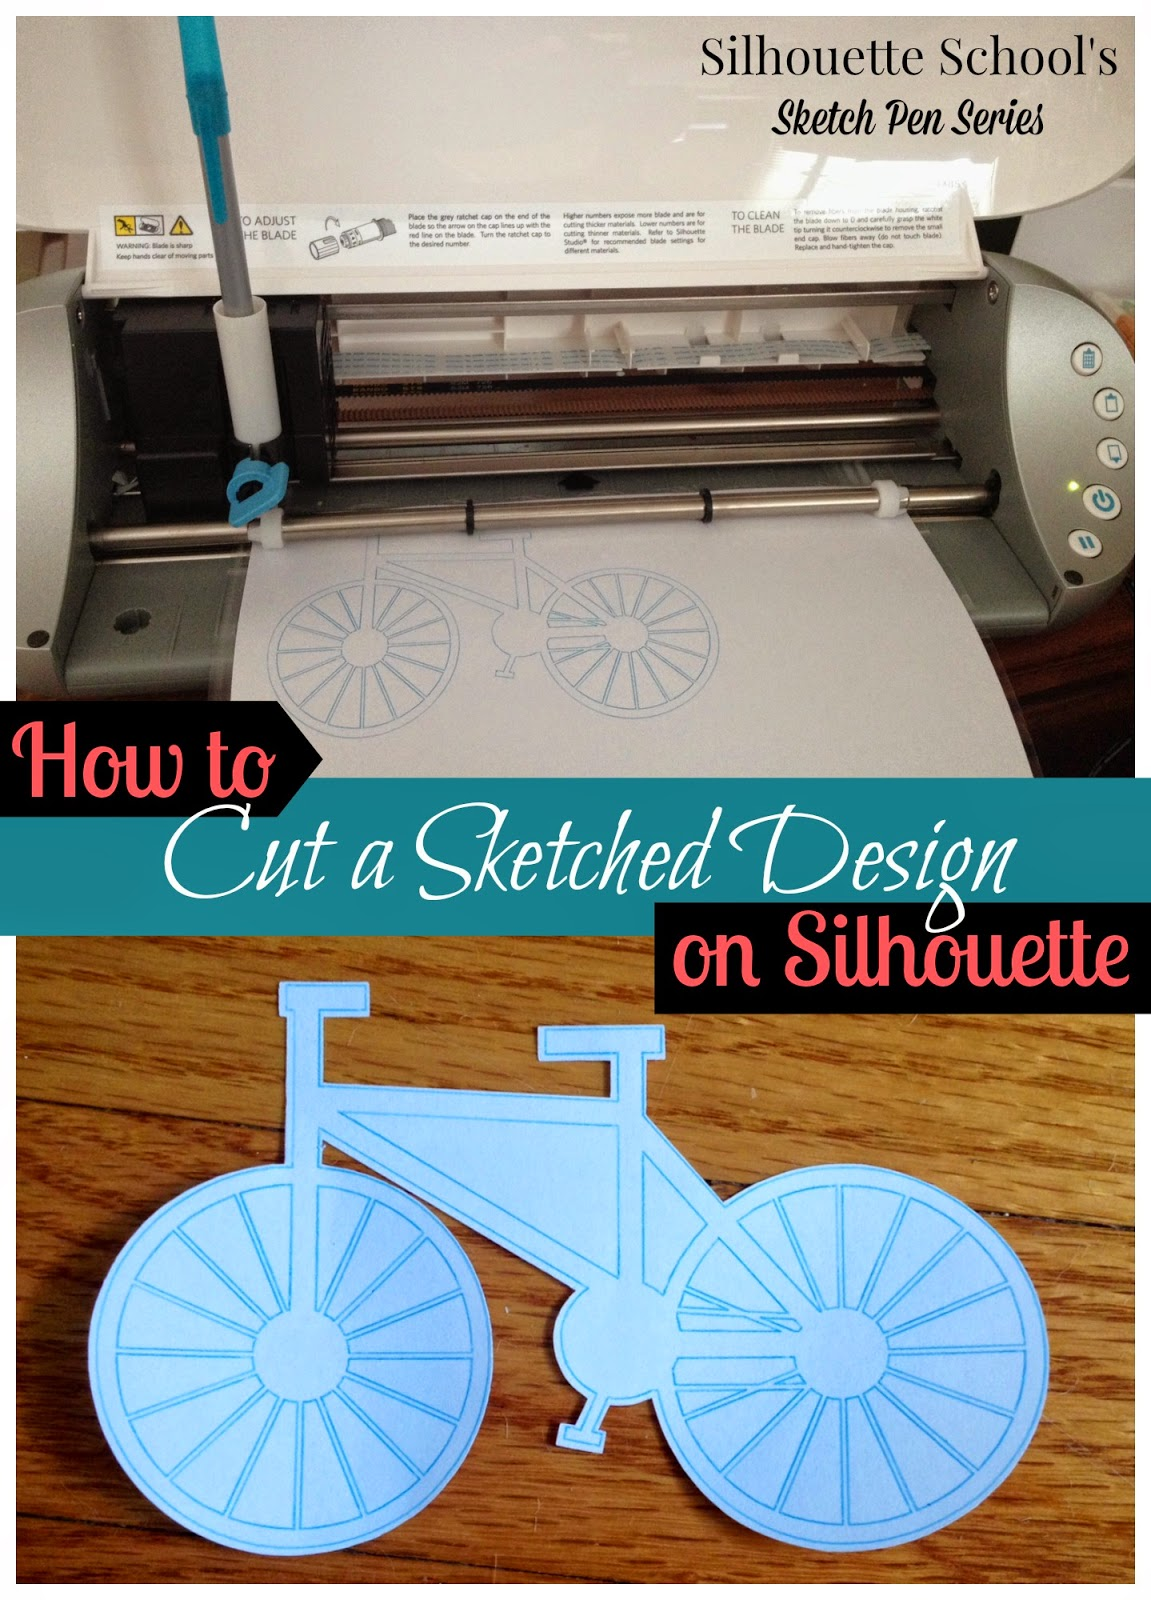 Sketch pen, Silhouette, Silhouette tutorial, sketched design, cut, Silhouette Studio